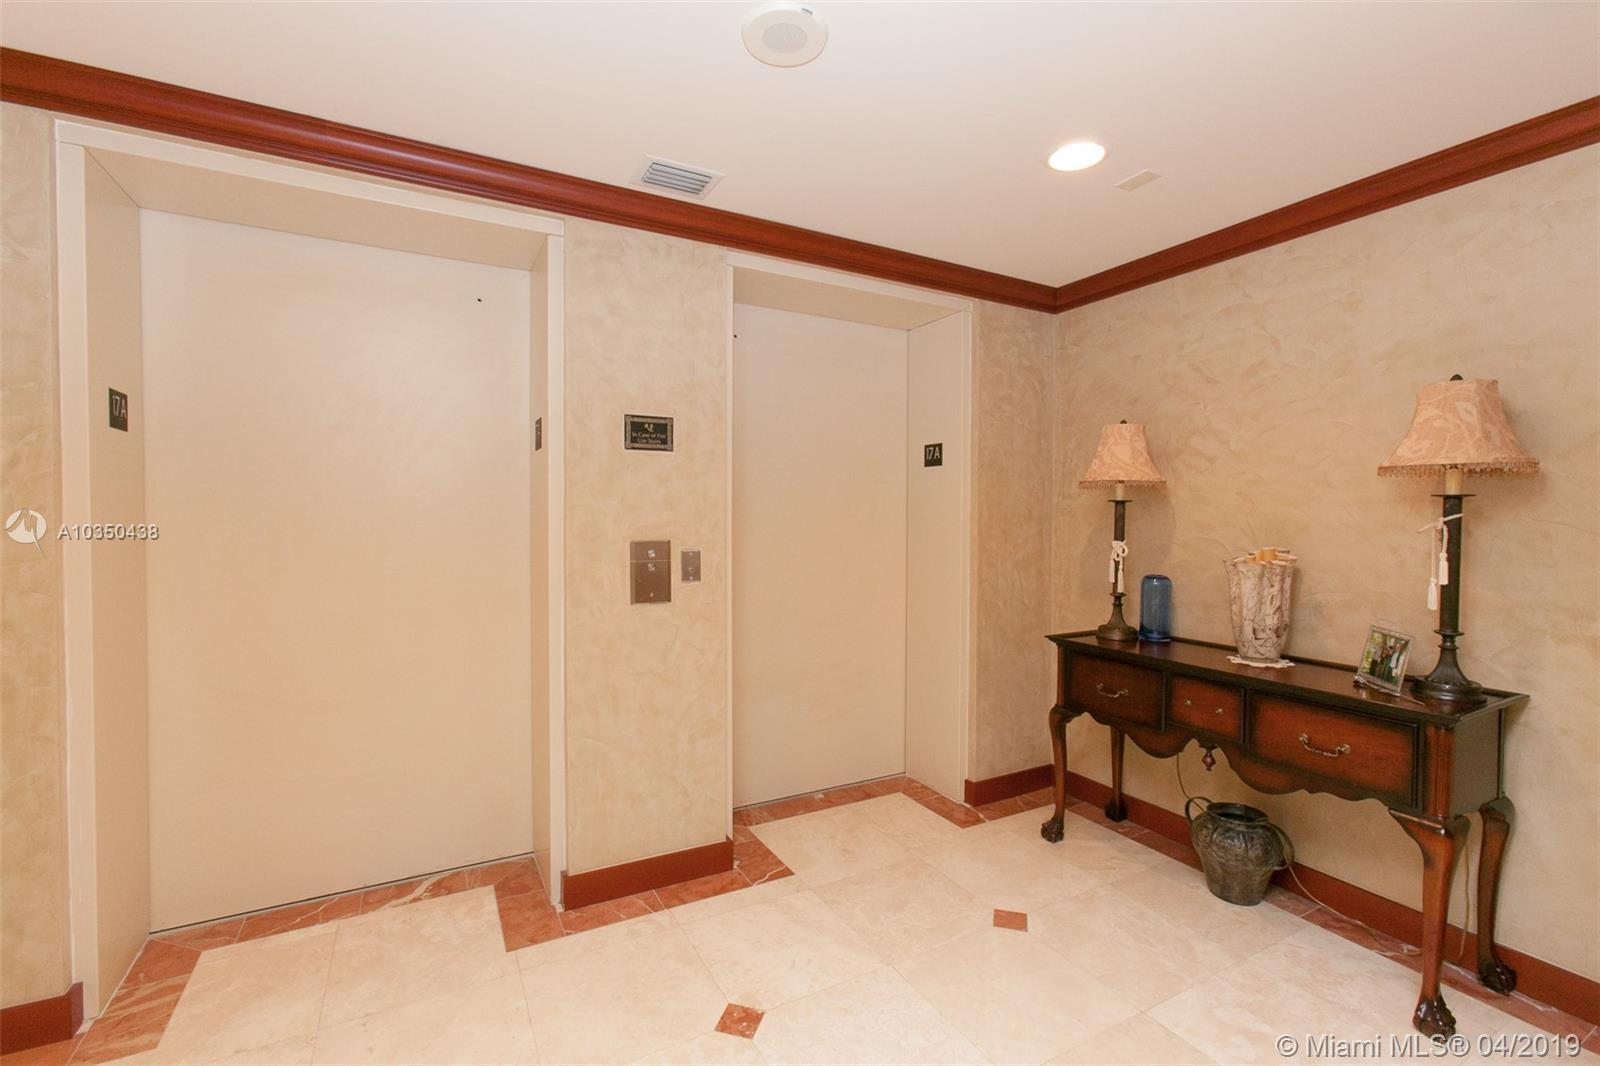 Photo of 3201 183 ST #1708, Aventura, Florida, 33160 - Private Elevator Foyer